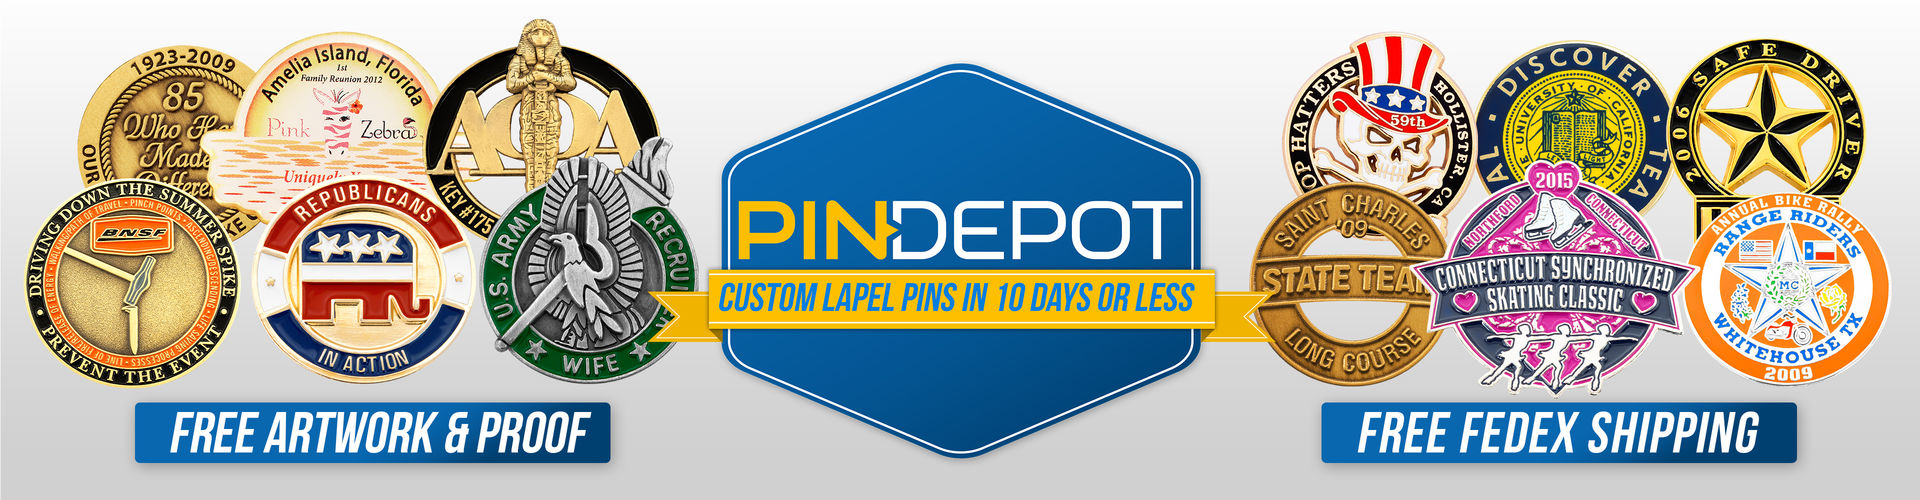 Pin Depot - Custom Lapel Pins in 10 Days or Less